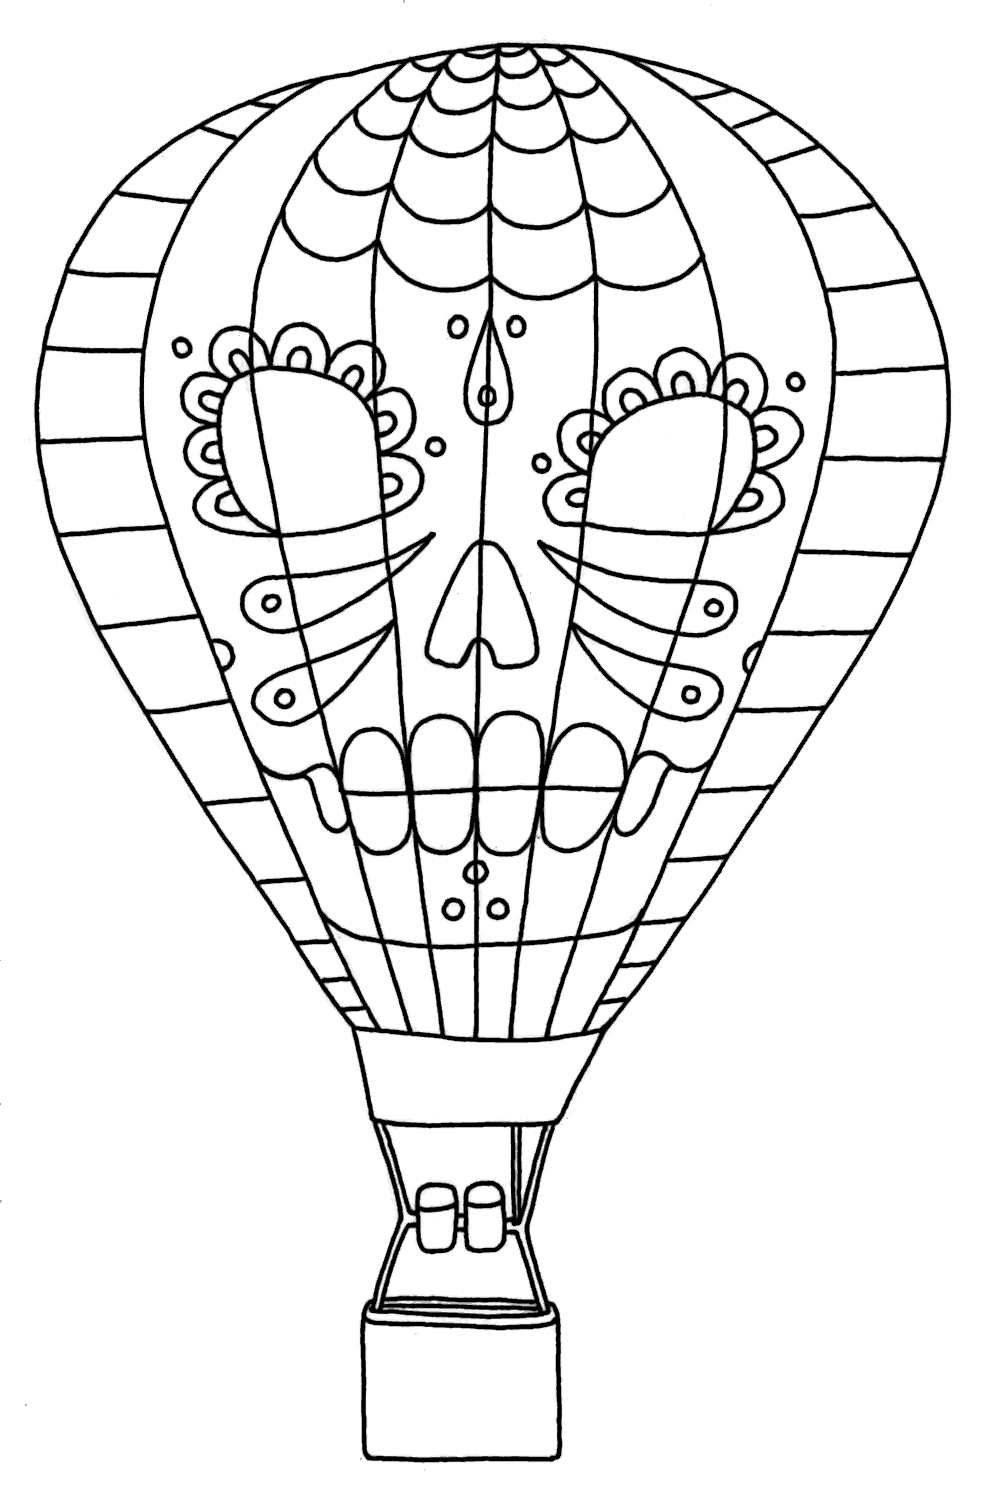 hot air balloon coloring pages printable hot air balloon coloring pages for kids cool2bkids air pages hot balloon coloring